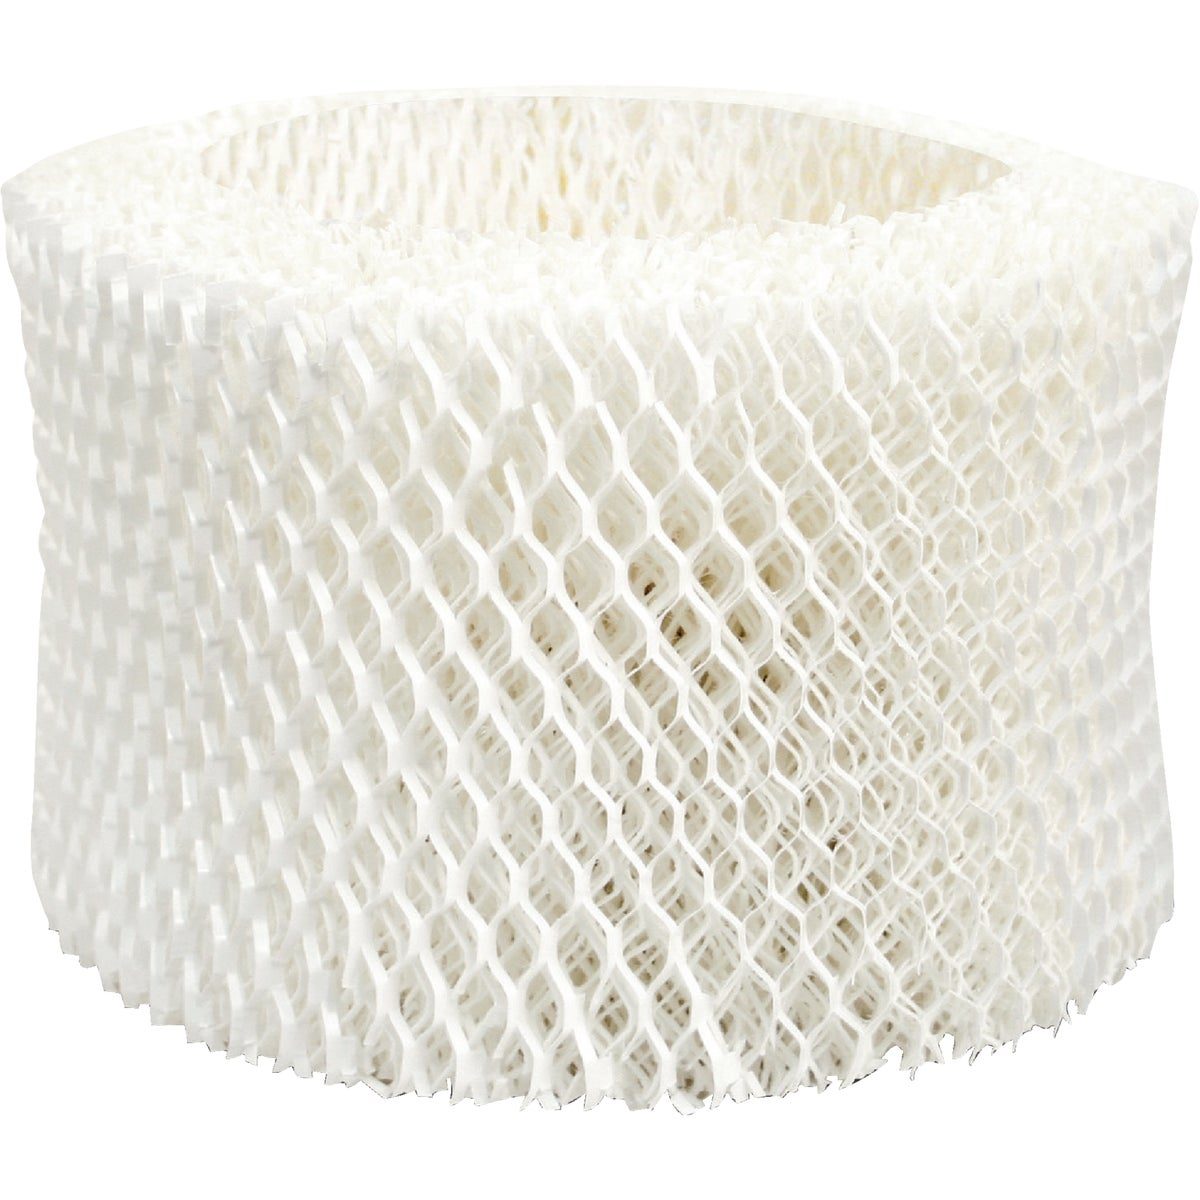 HUMIDIFIER FILTER - HAC-504AW by Kaz Home Environment